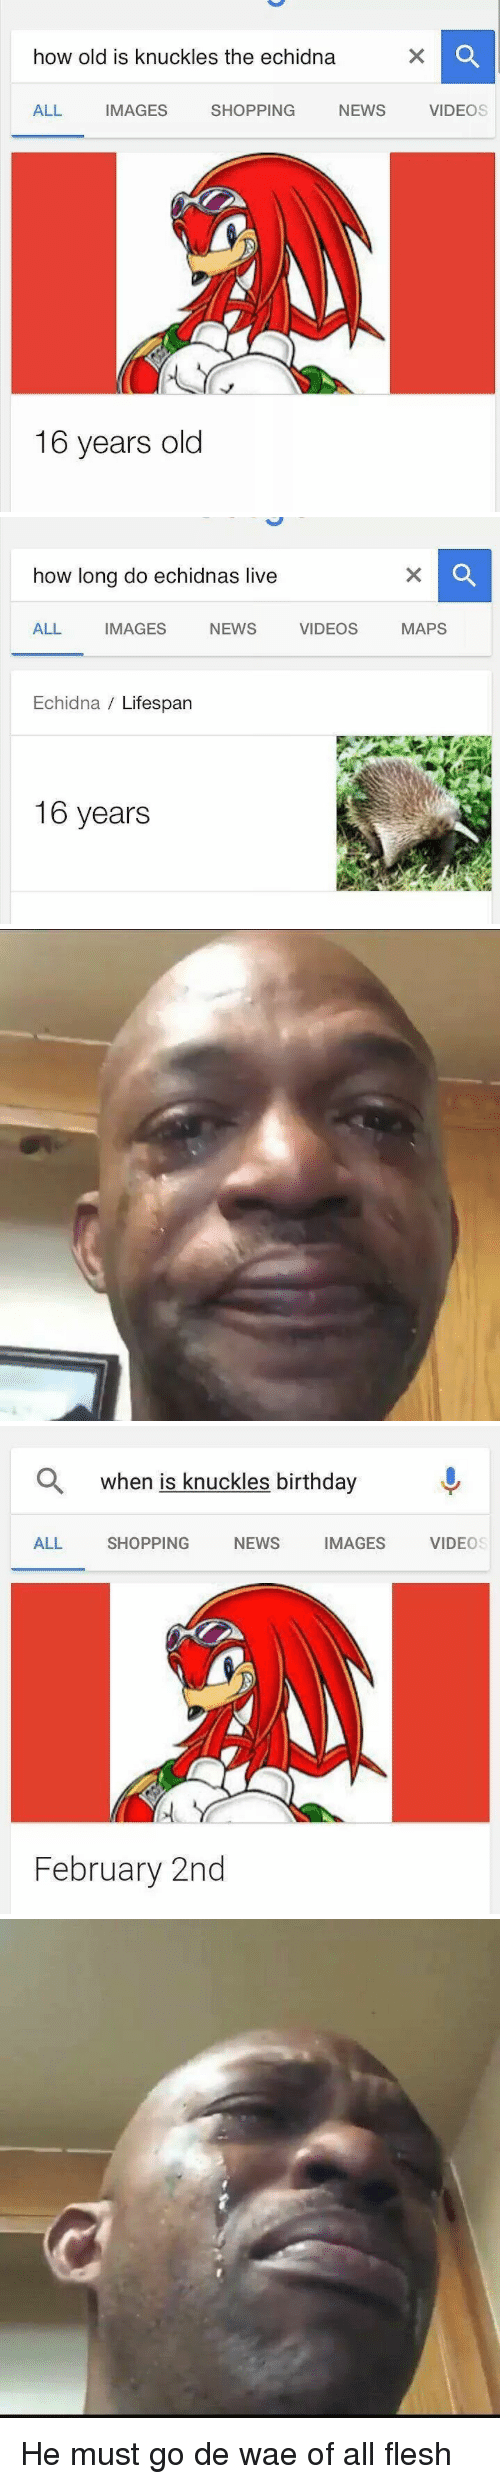 Birthday, News, and Shopping: how old is knuckles the echidna  ALL IMAGES SHOPPING NEWS VIDEOS  16 years old   how long do echidnas live  ALL  IMAGES  NEWS  VIDEOS  MAPS  Echidna Lifespan  16 years   Q when is knuckles birthday  ALL SHOPPING NEWS IMAGES VIDEOS  February 2nd <p>He must go de wae of all flesh</p>